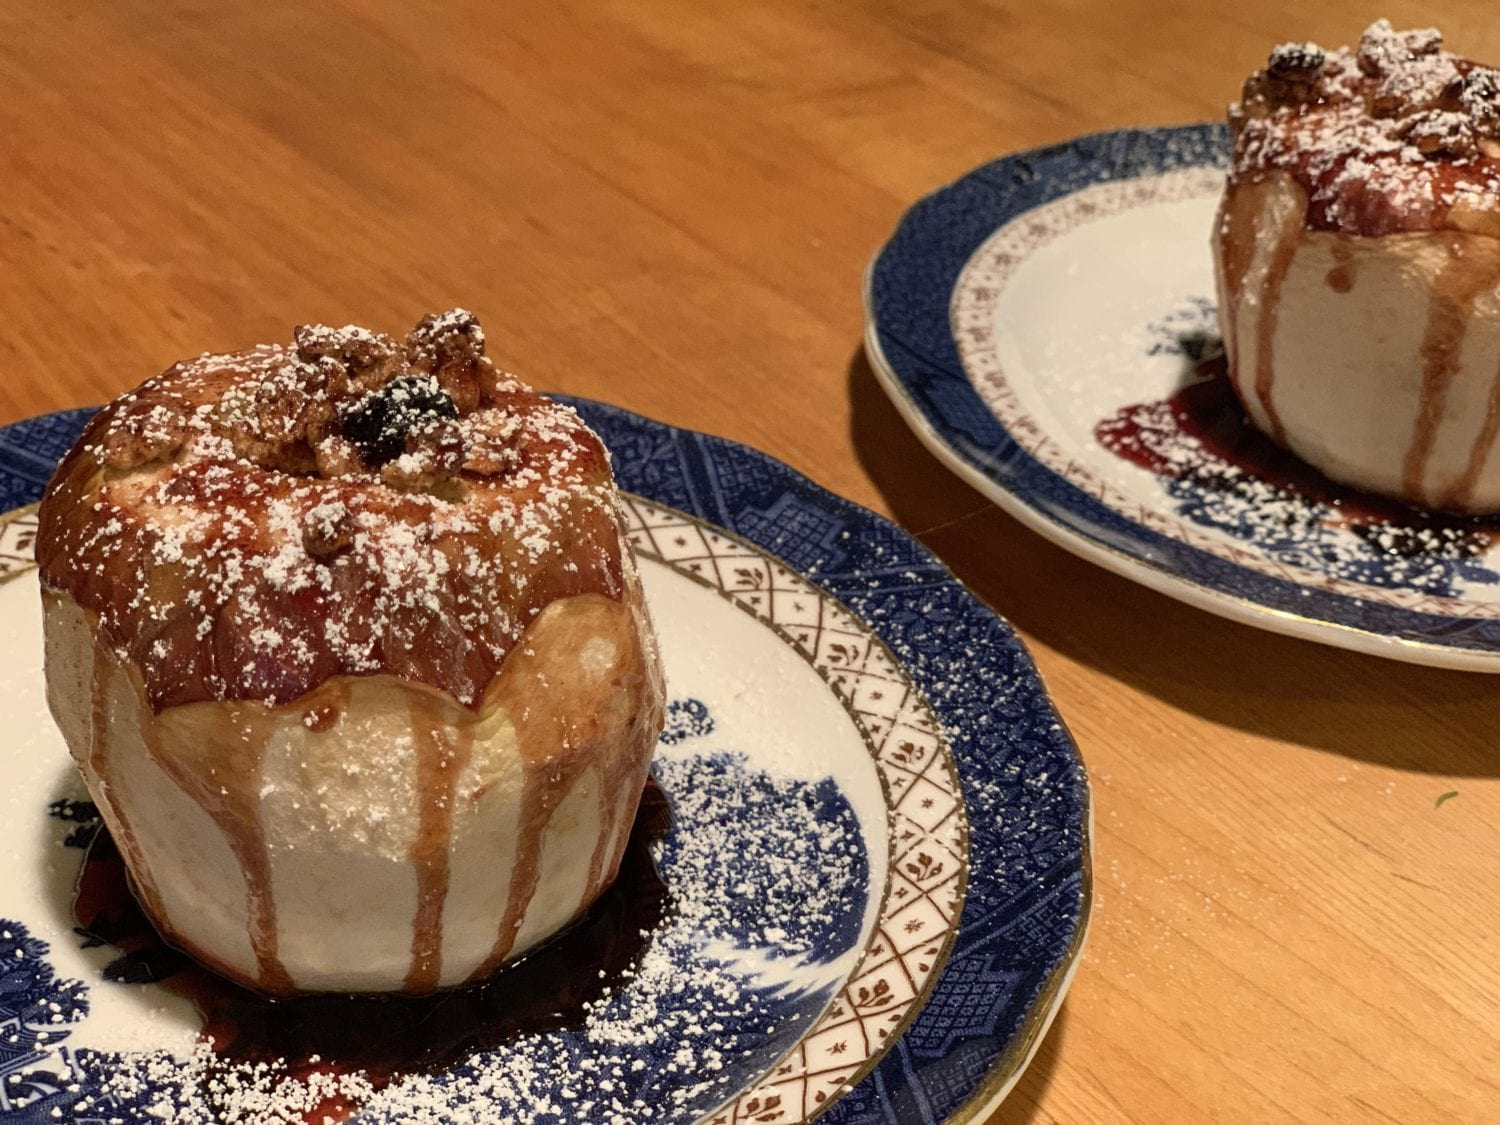 On chilly fall and winter mornings, guests will enjoy our baked apples cooked with granola, maple syrup and cranberry juice. These particular apples were served on blue and white plates